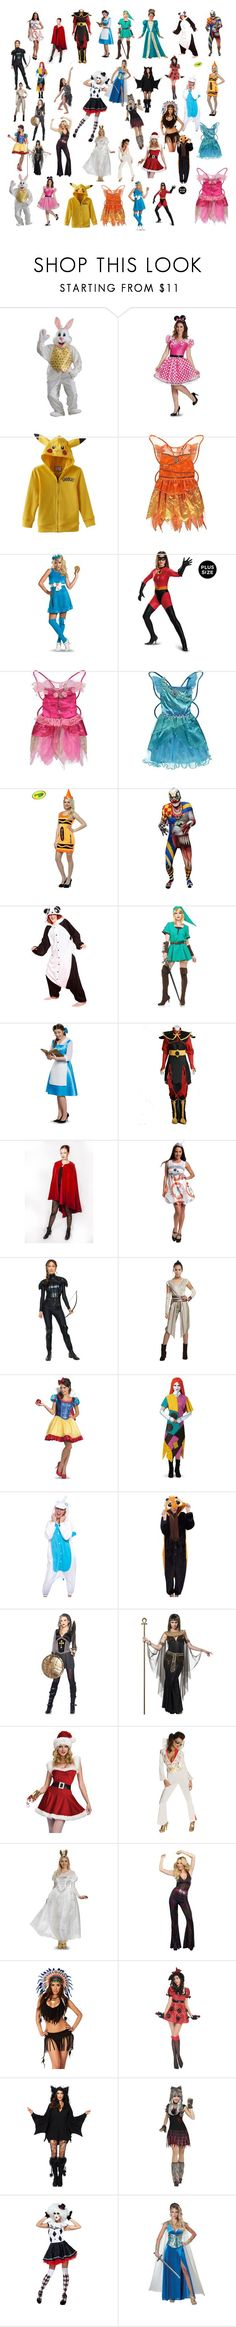 """""""Adult Costumes"""" by galactic-girl ❤ liked on Polyvore featuring George, Disguise, Rasta Imposta, Buy Seasons, Rubie's Costume Co. and Dreamgirl"""